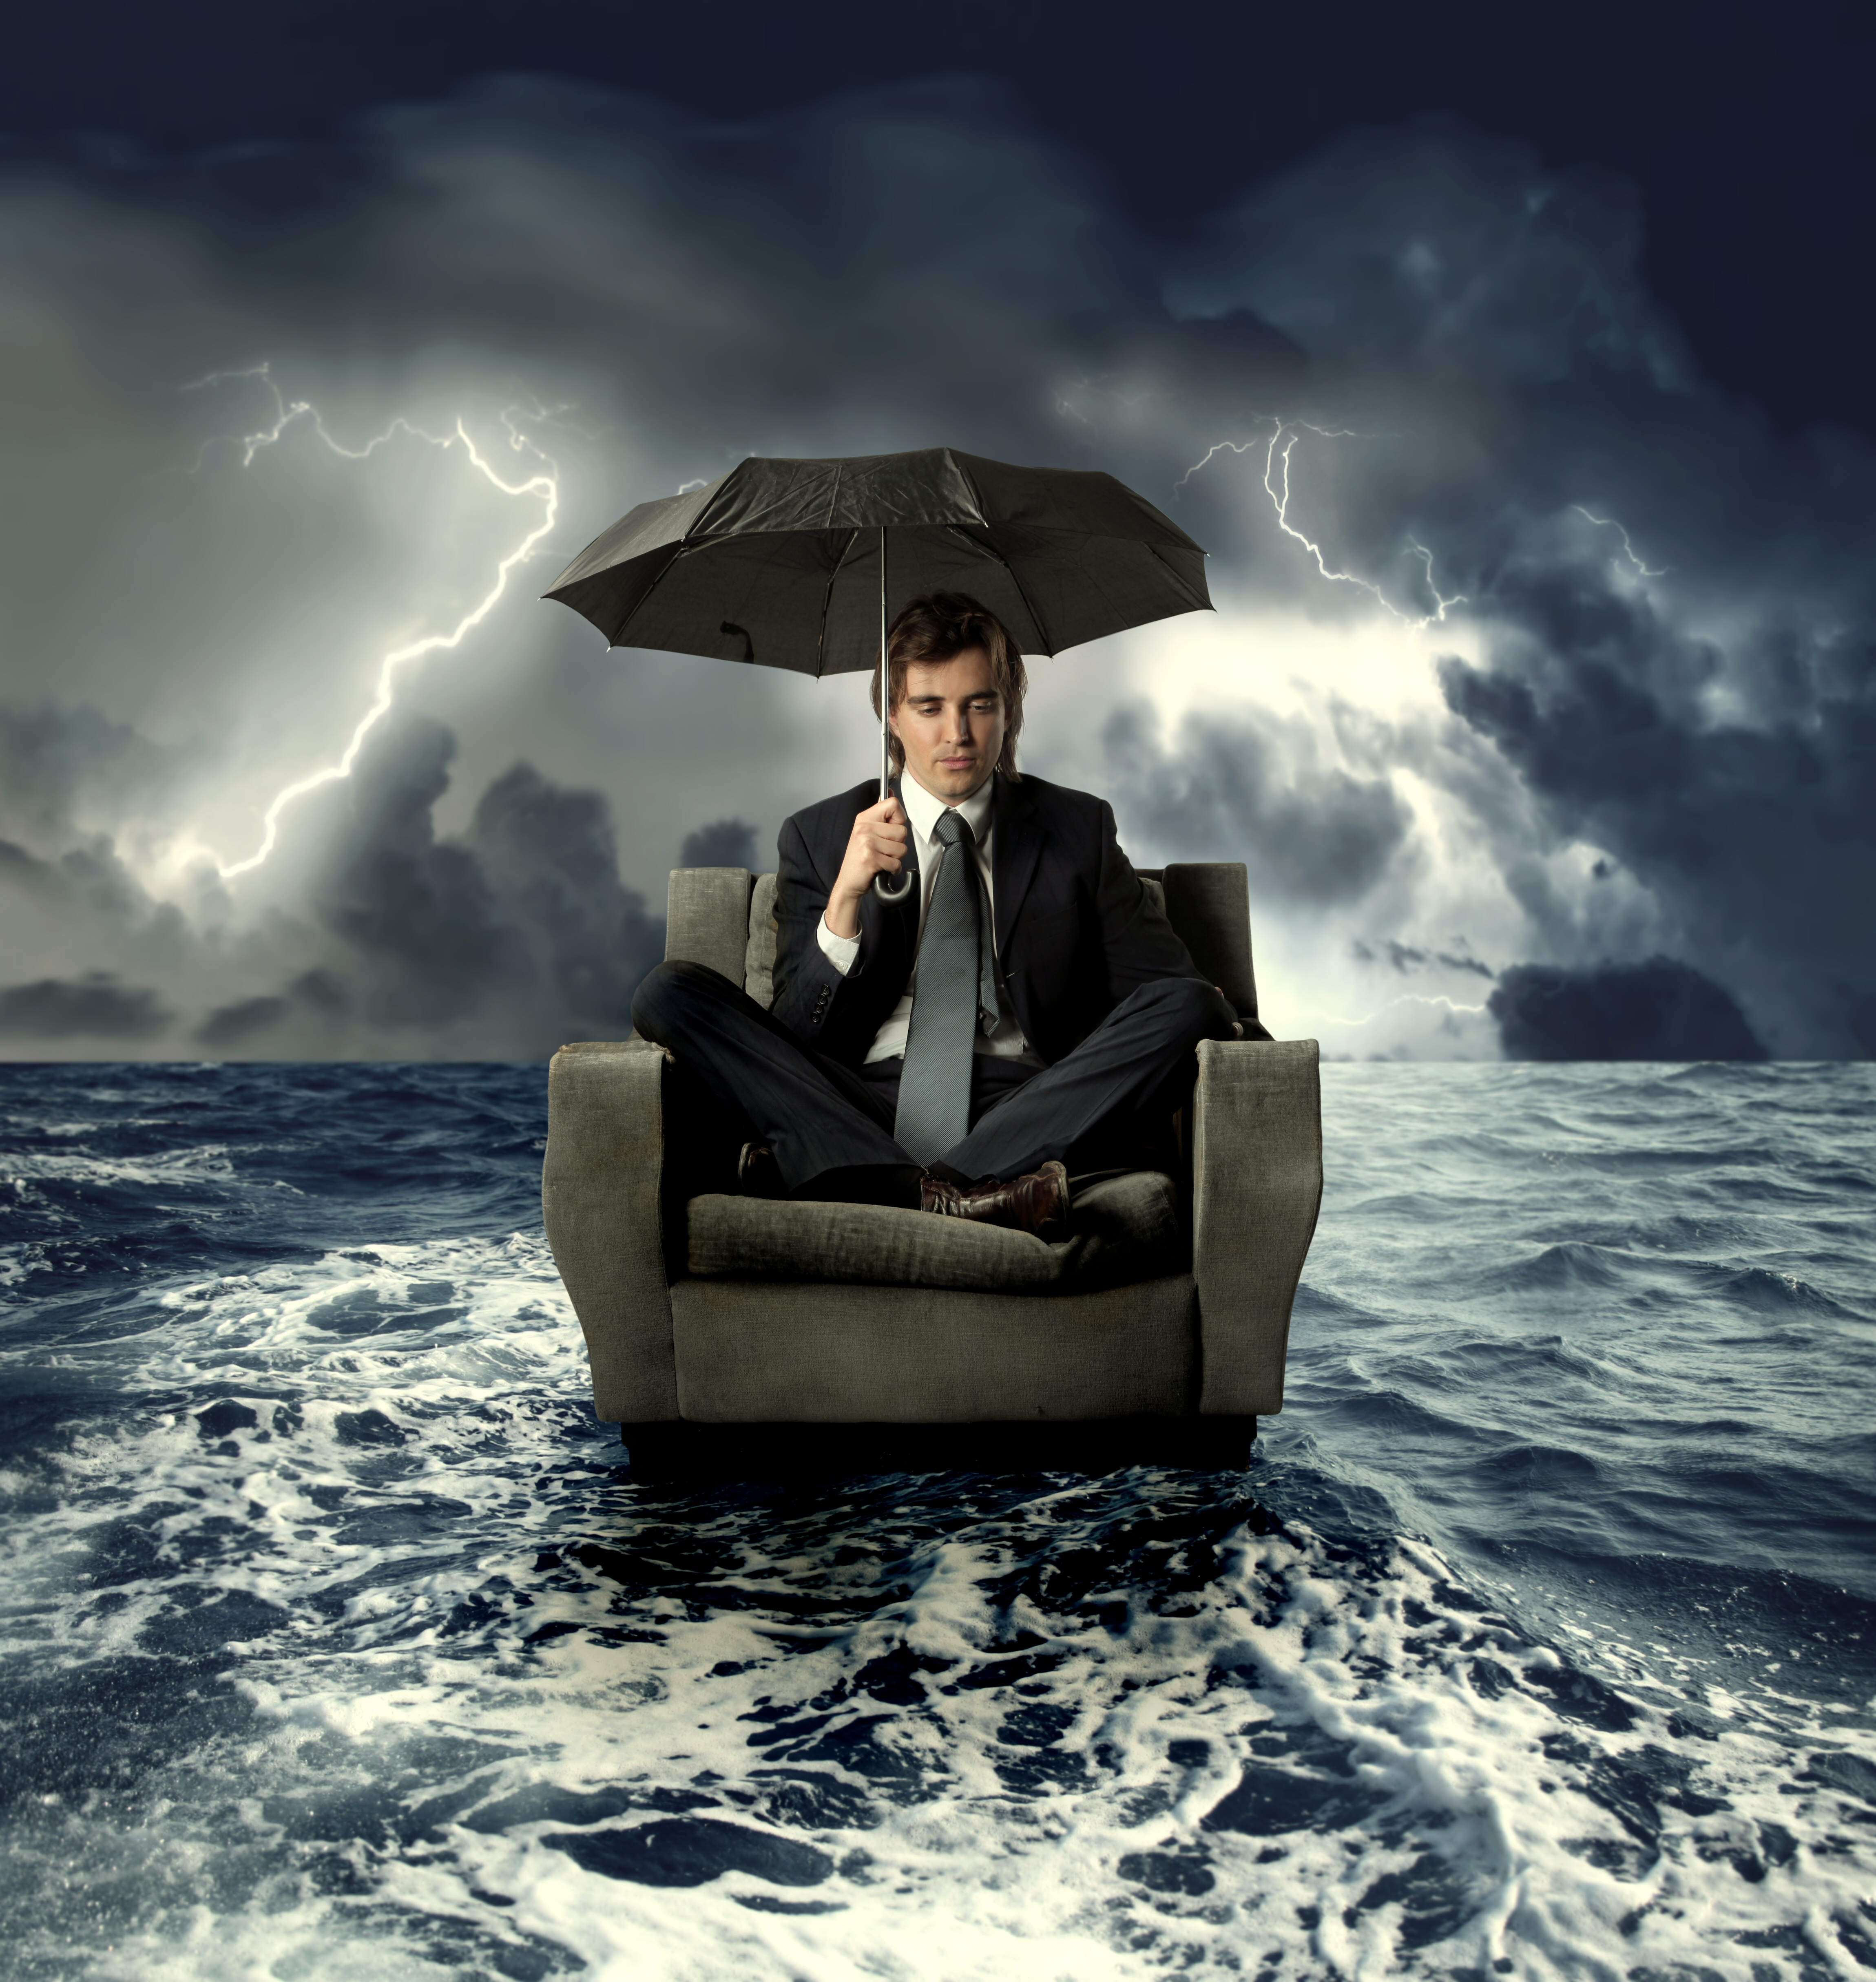 Contractor on a sofa in the sea with umbrella